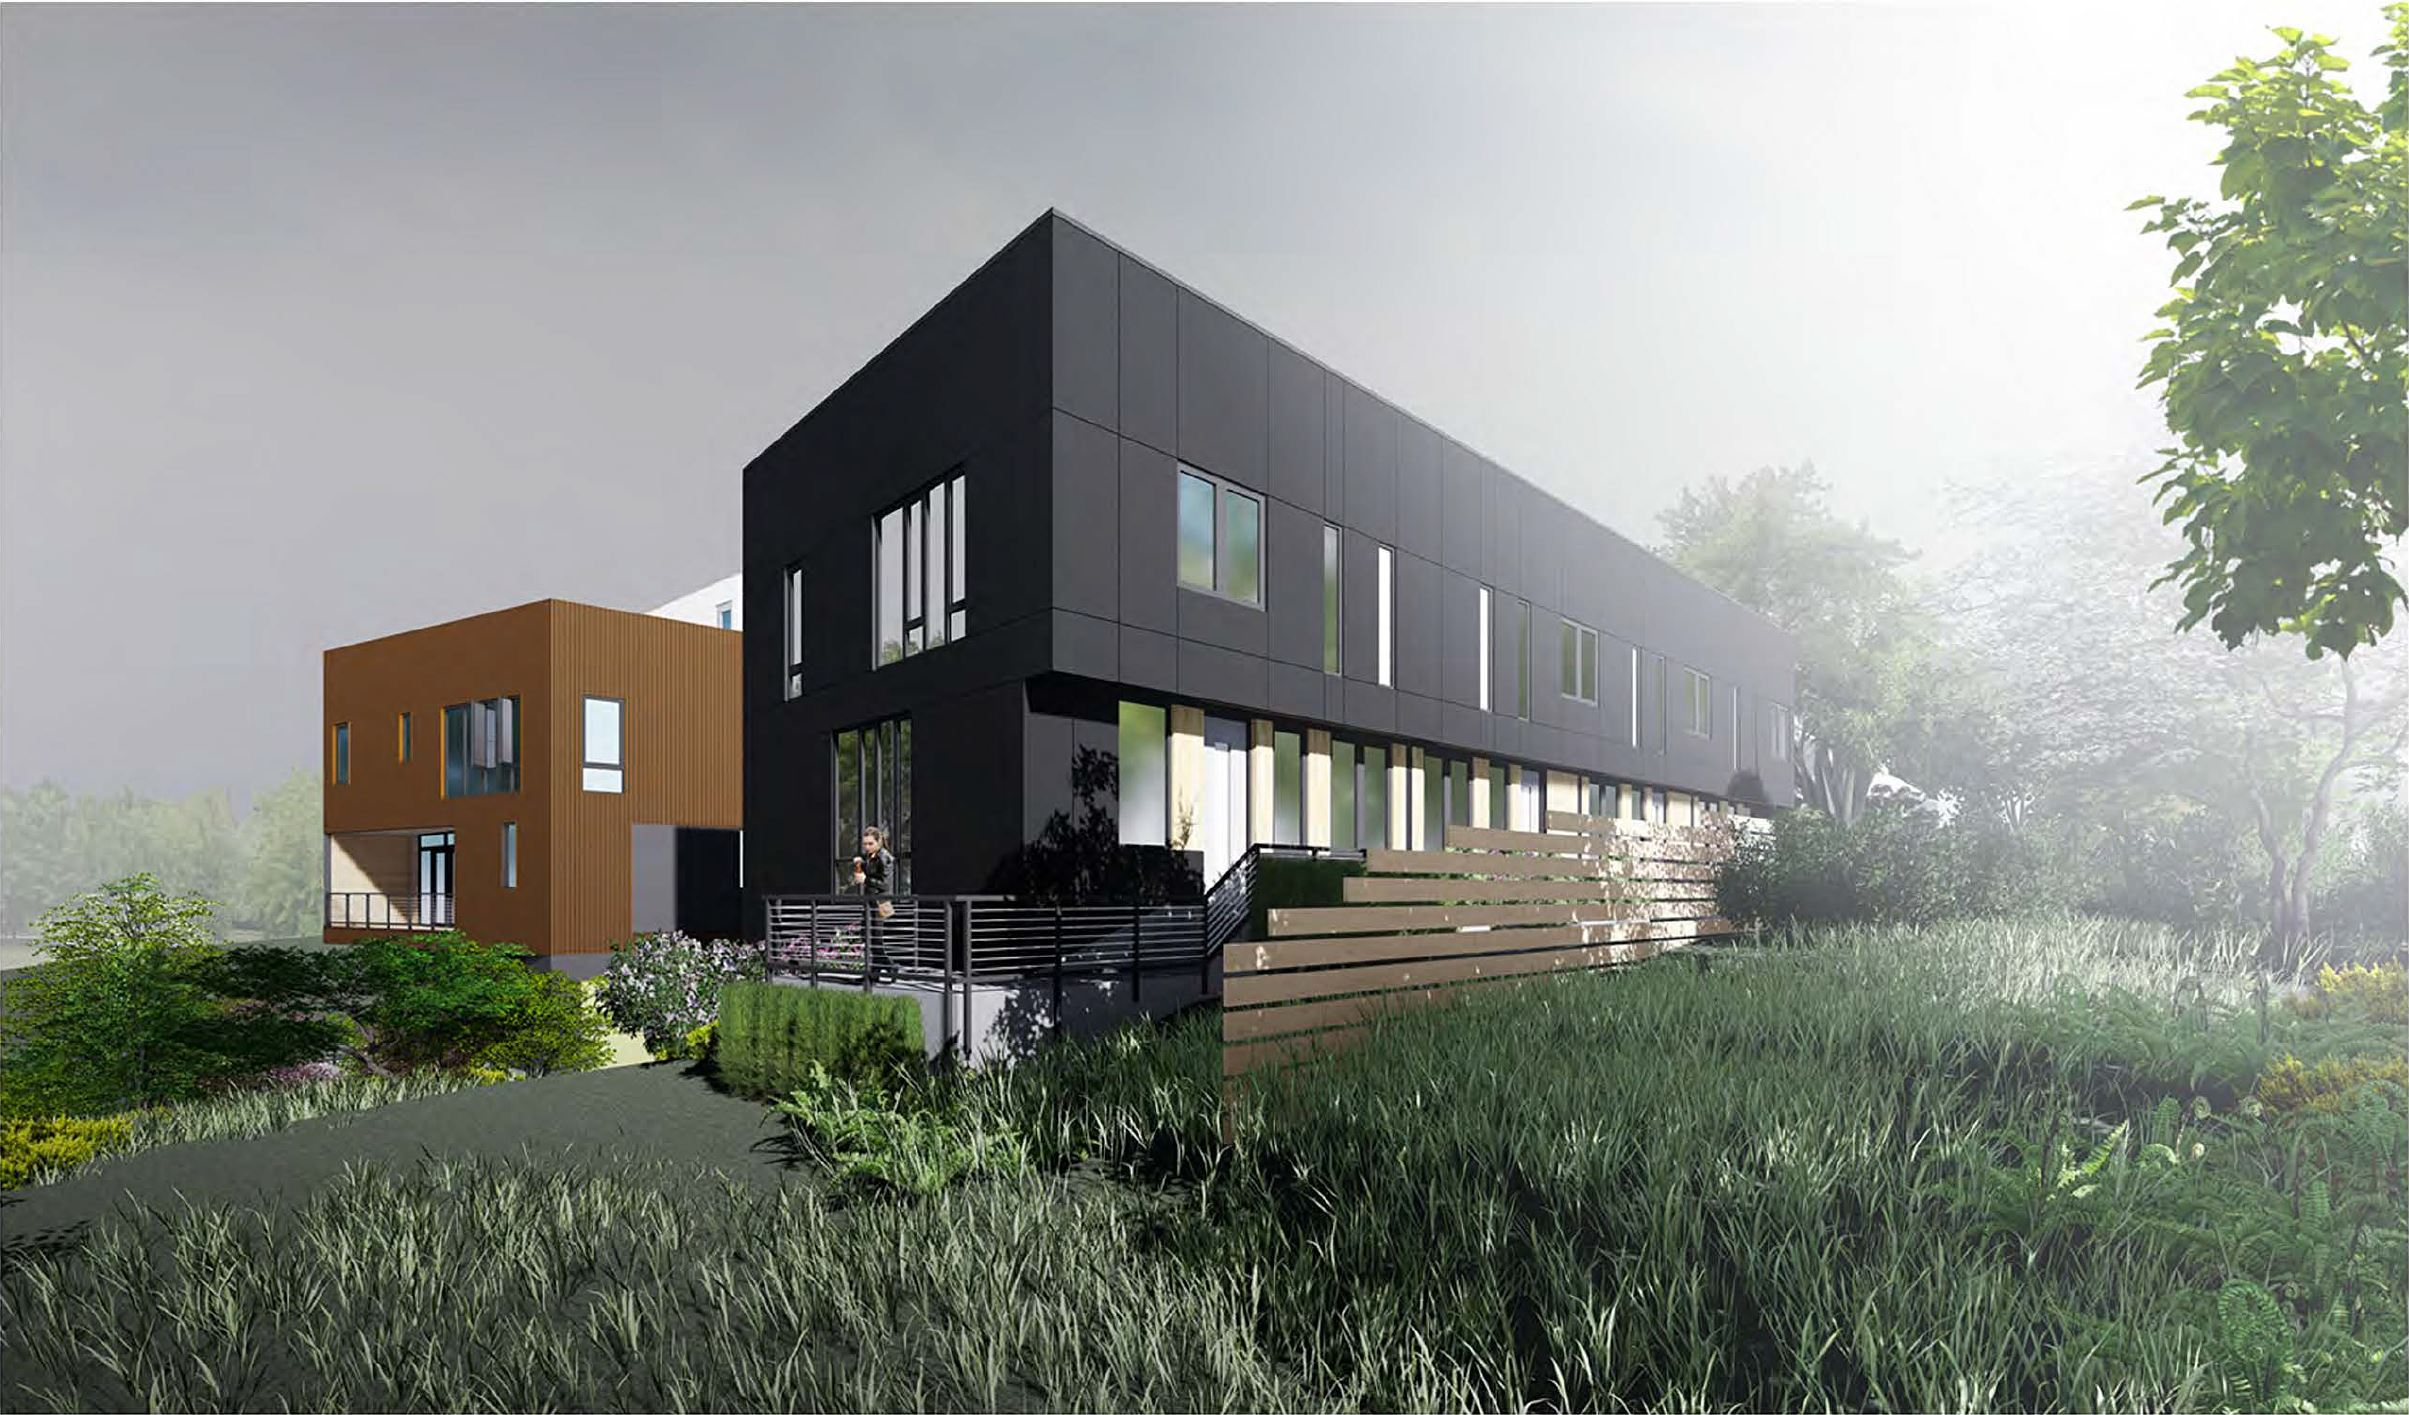 402 Jefferson Ave #F, Cleveland, OH 44113 | $474,900    4 bed 3.5 bath 2253 sq. ft. $614,900 To Be Built